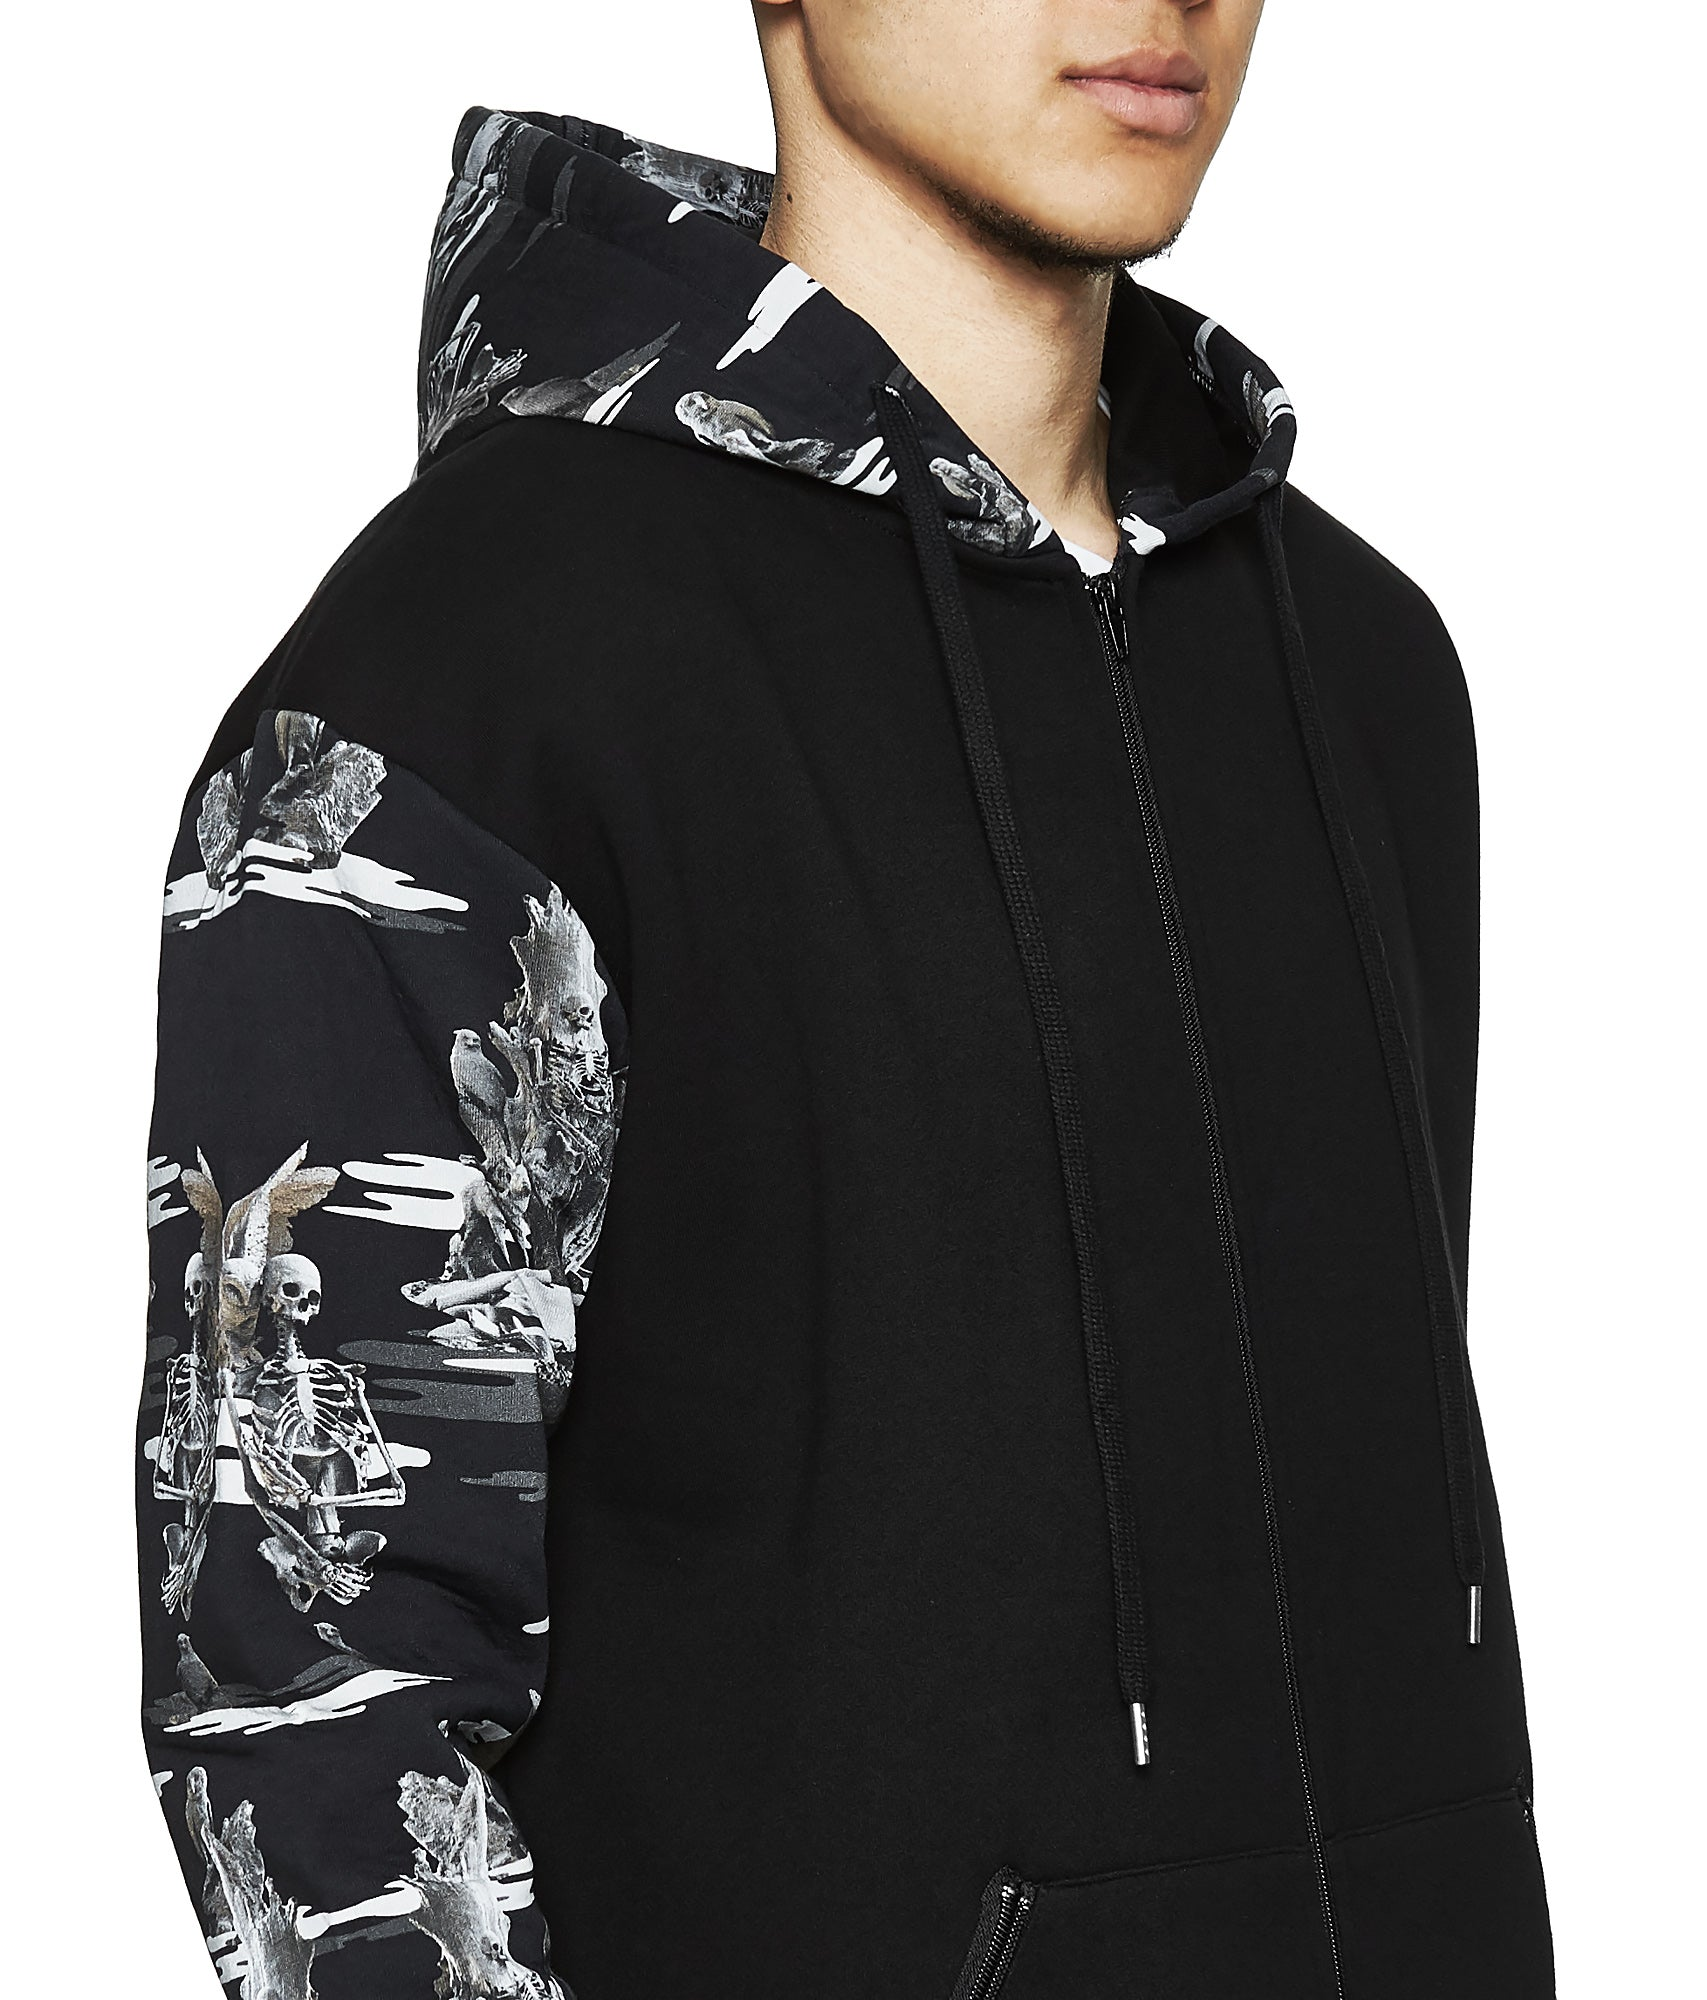 Fall of Paradise Camo Hoodie Grey - Designer Brand - This Is Not Clothing - Lookbook Photo 3